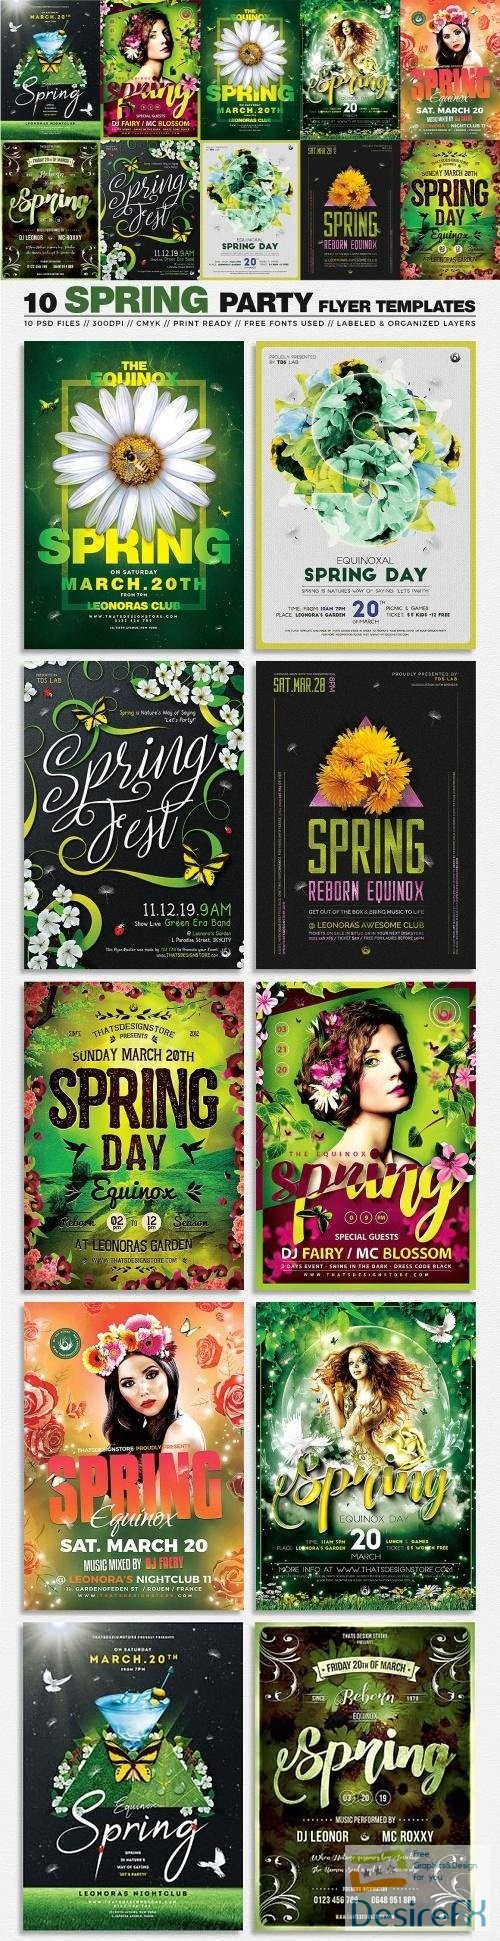 layered-psd - 10 Spring Party Flyer Bundle - 3441084